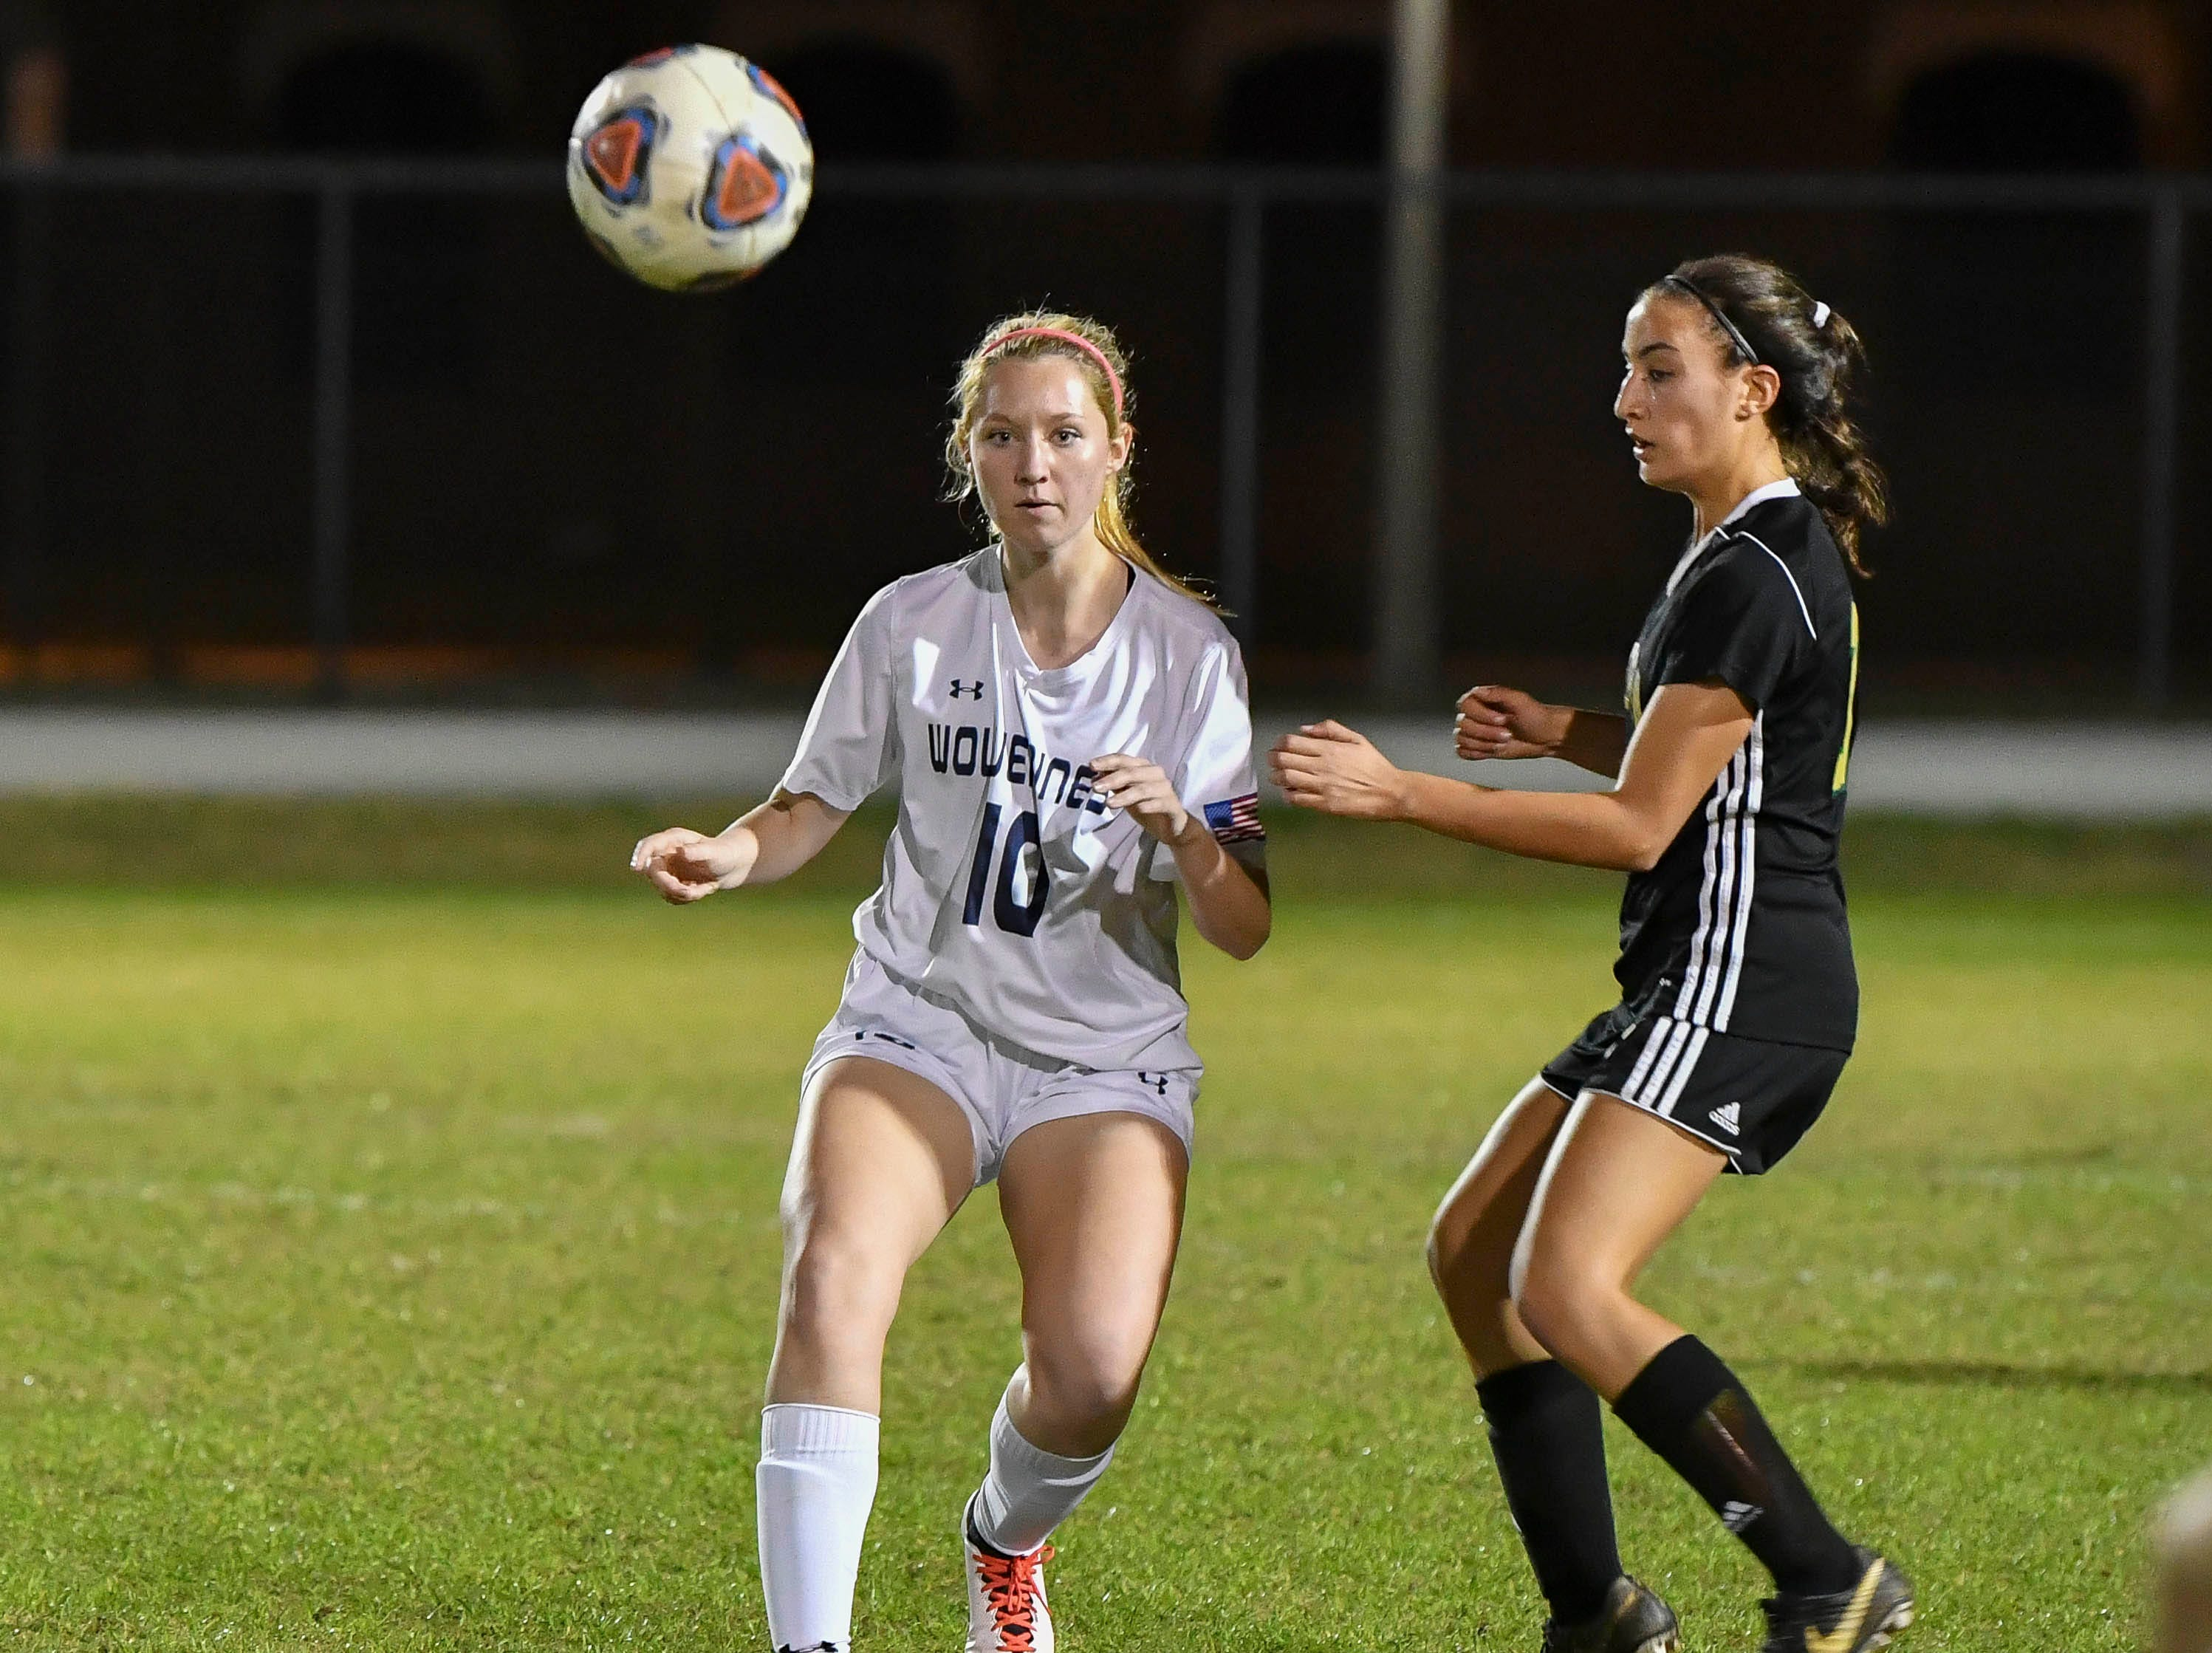 Autumn Lockhart of Windermere drives the ball away from Viera's Serena Zarzana during Tuesday's Regional Quarterfinal game at Viera High School